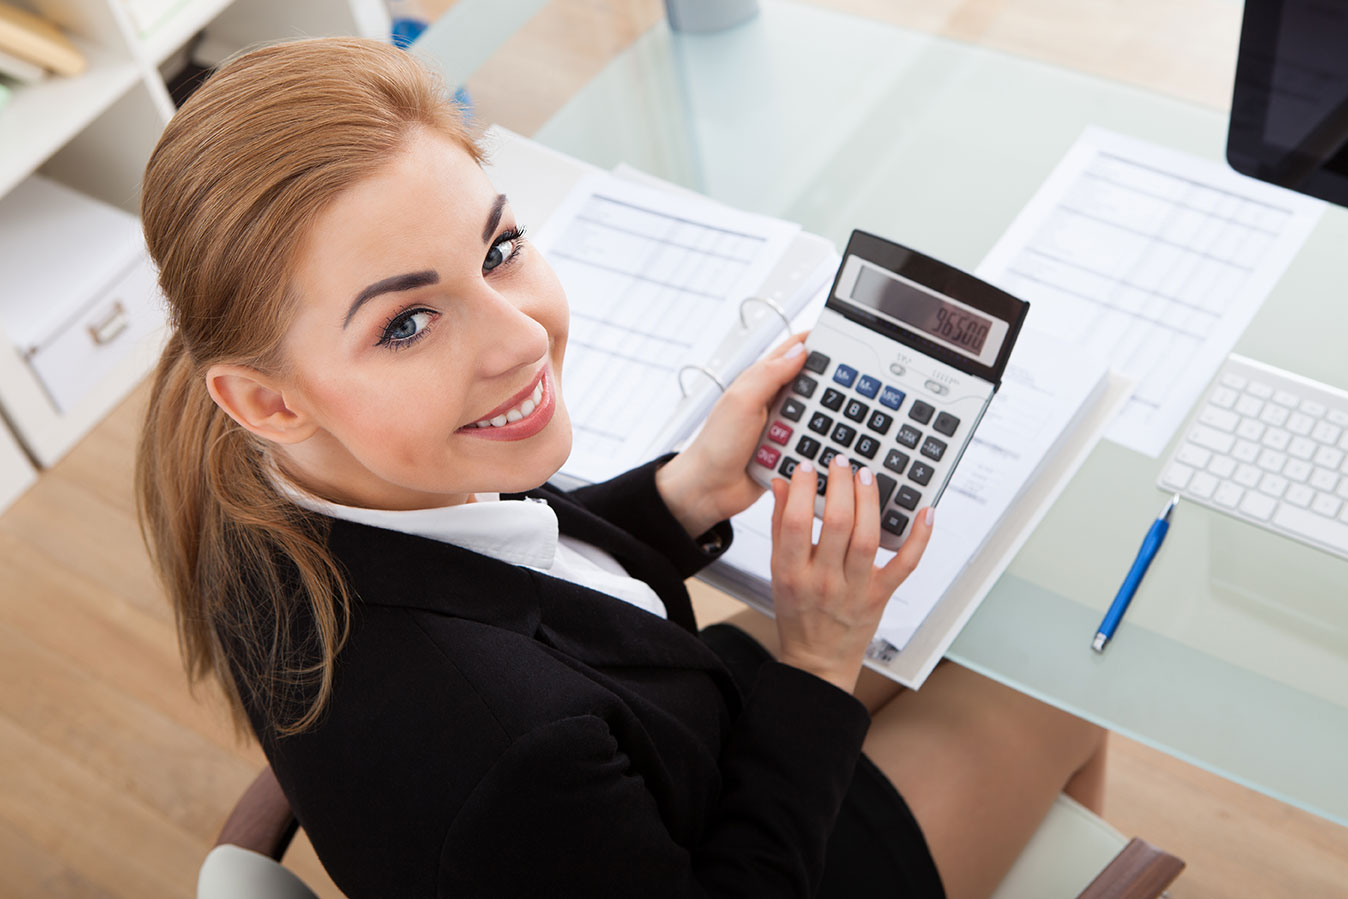 54e67c57ea3bd5c520847cd9_Young-Businesswoman-Working.jpg